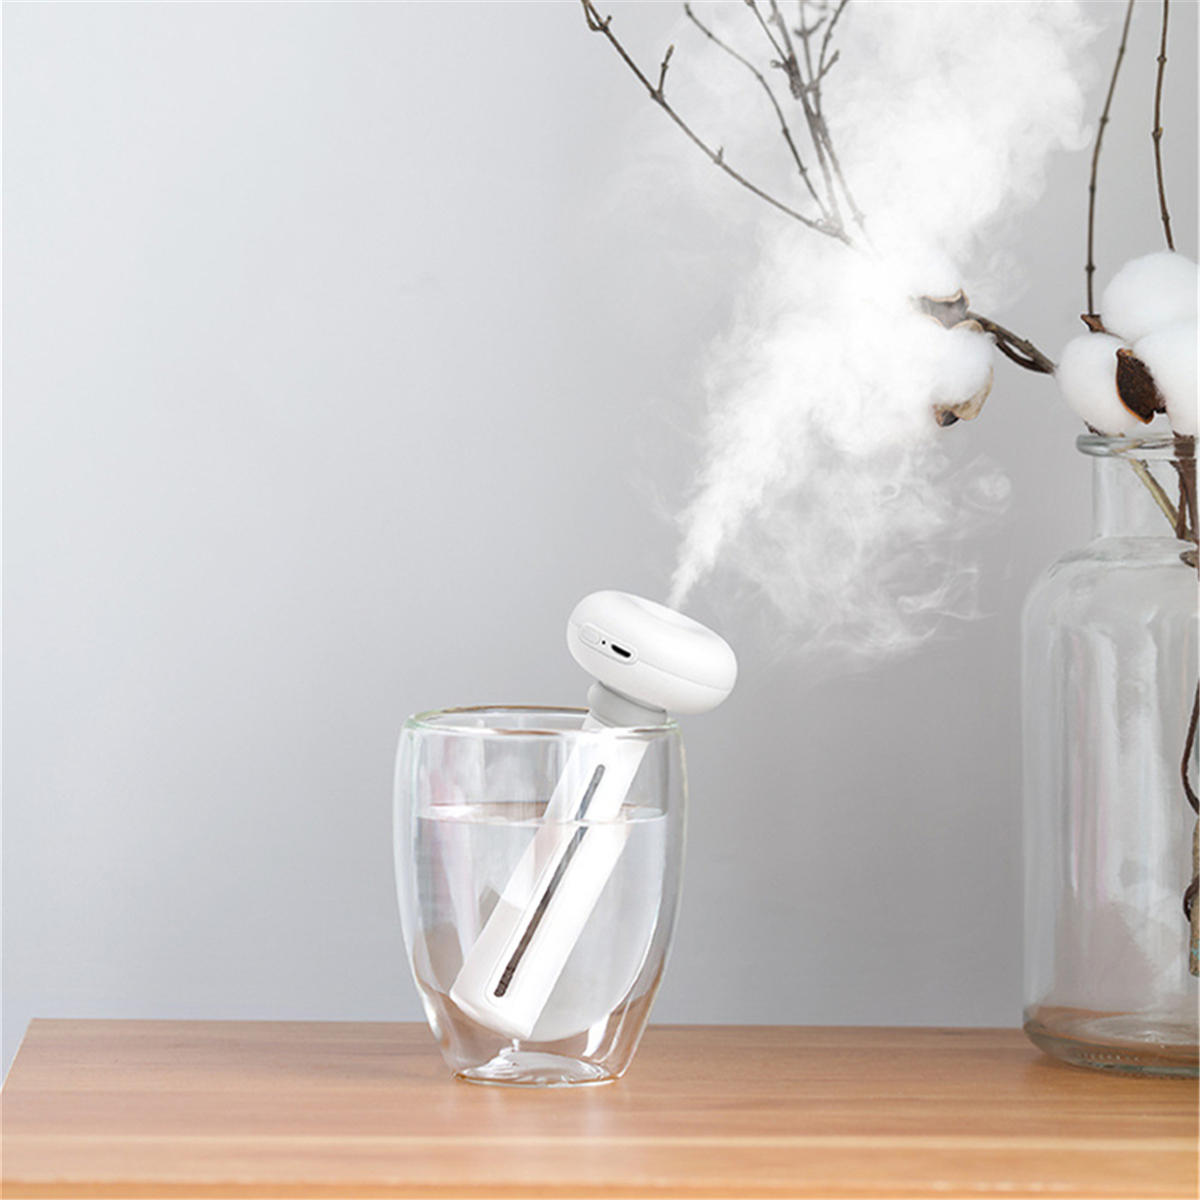 Portable USB Aroma Diffuser Dismountable Air Humidifier For Home Office Car